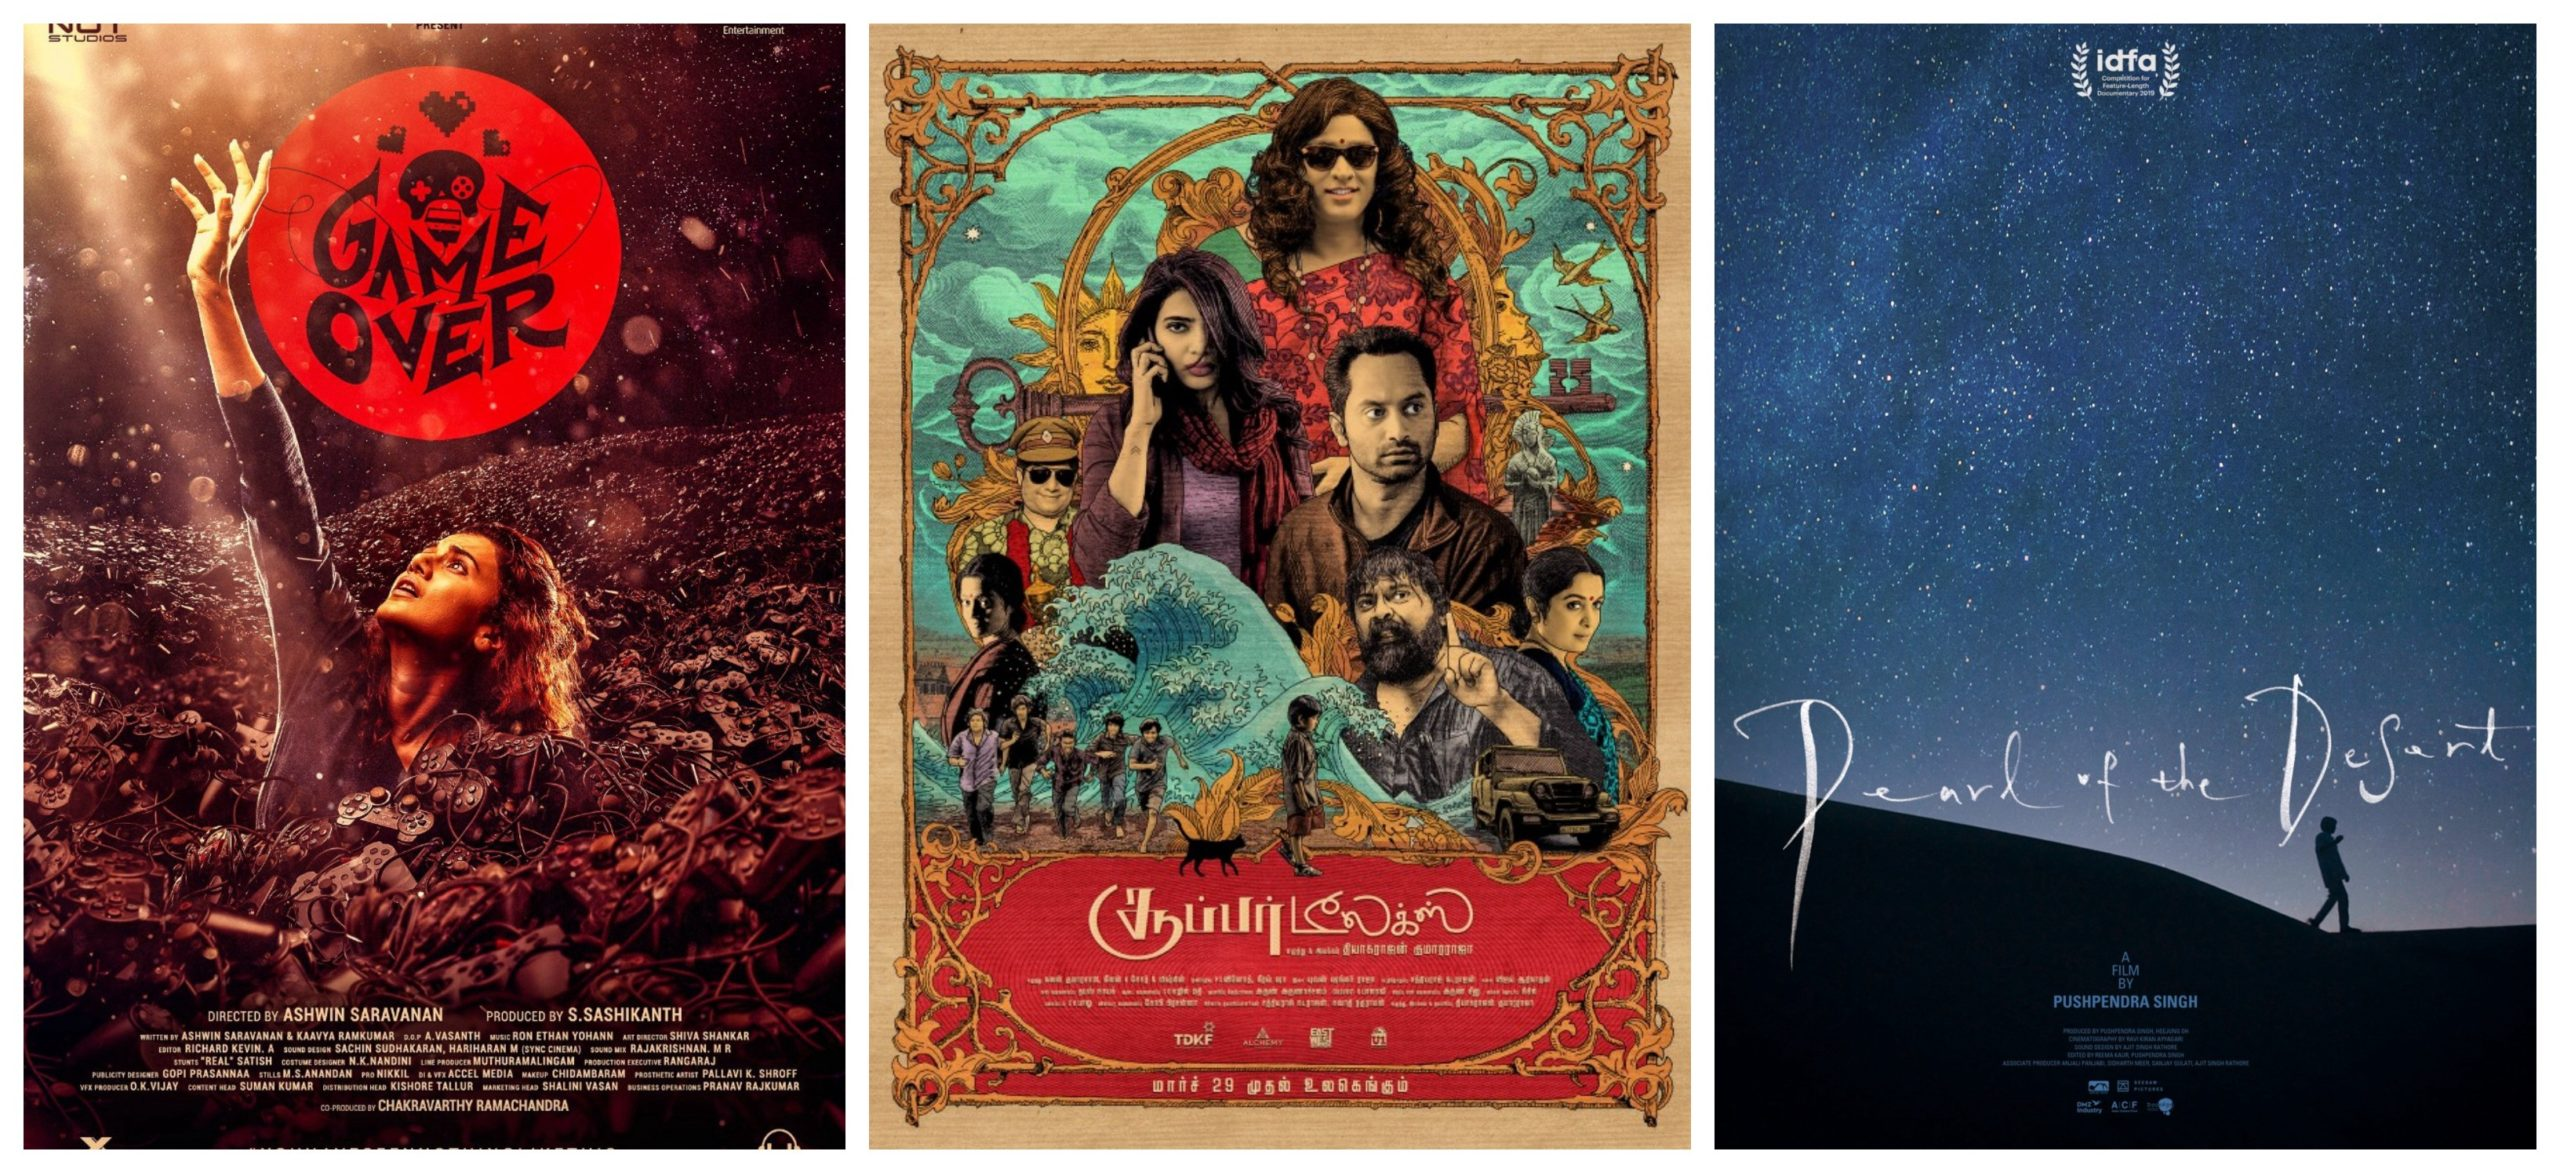 Atishmkv Website 2021 – Download Bollywood, Hollywood Movies For Free – Is It Safe?